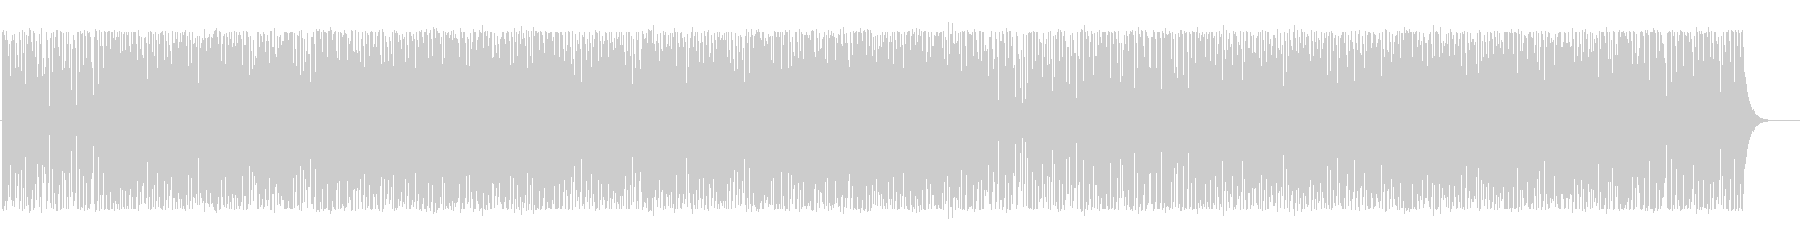 Bright and light techno BGM's unreproduced waveform